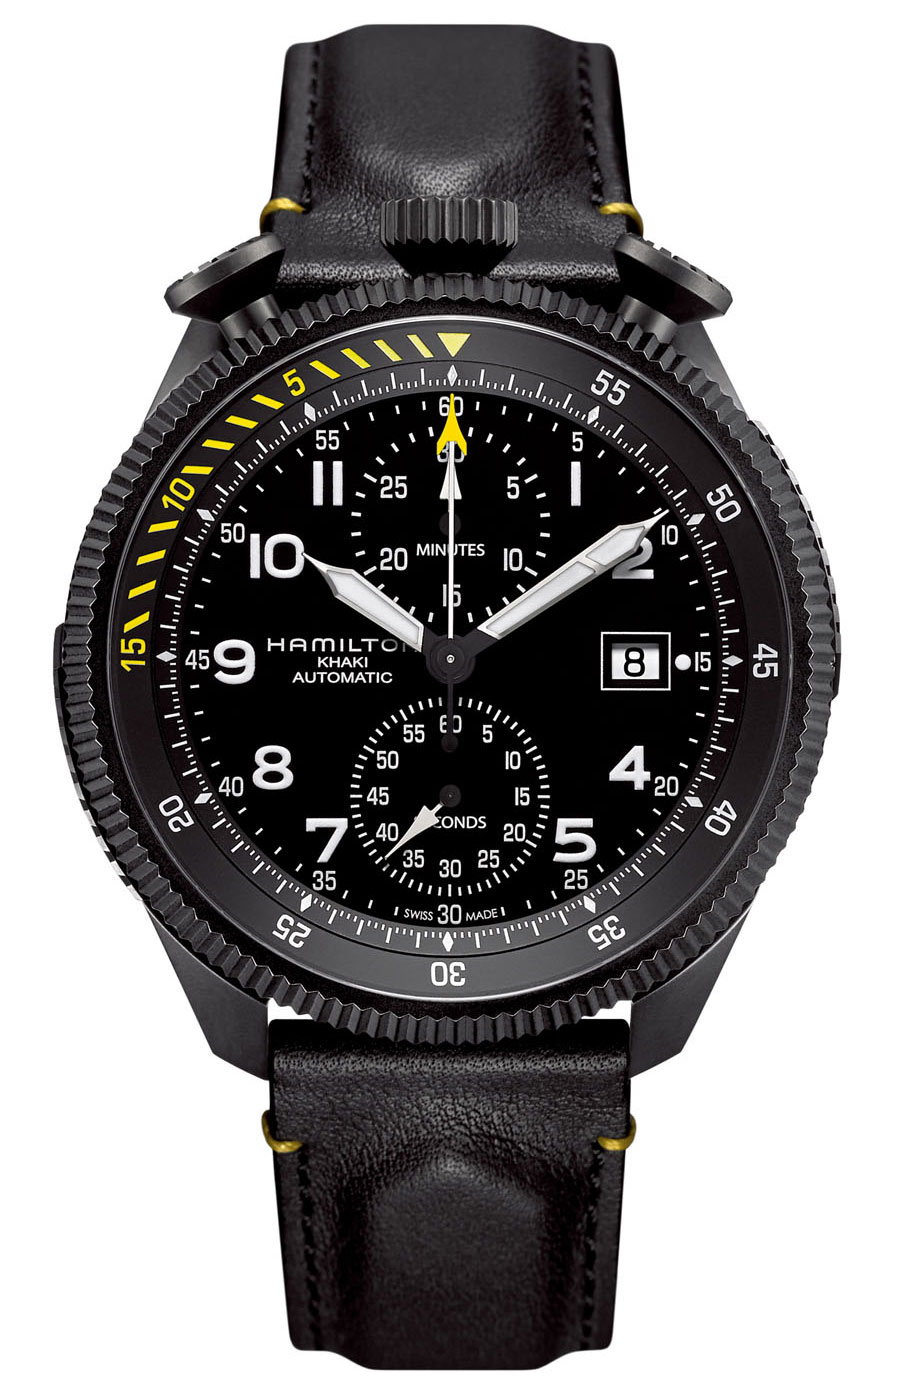 Часы Takeoff Auto Chrono Limited Edition от Hamilton